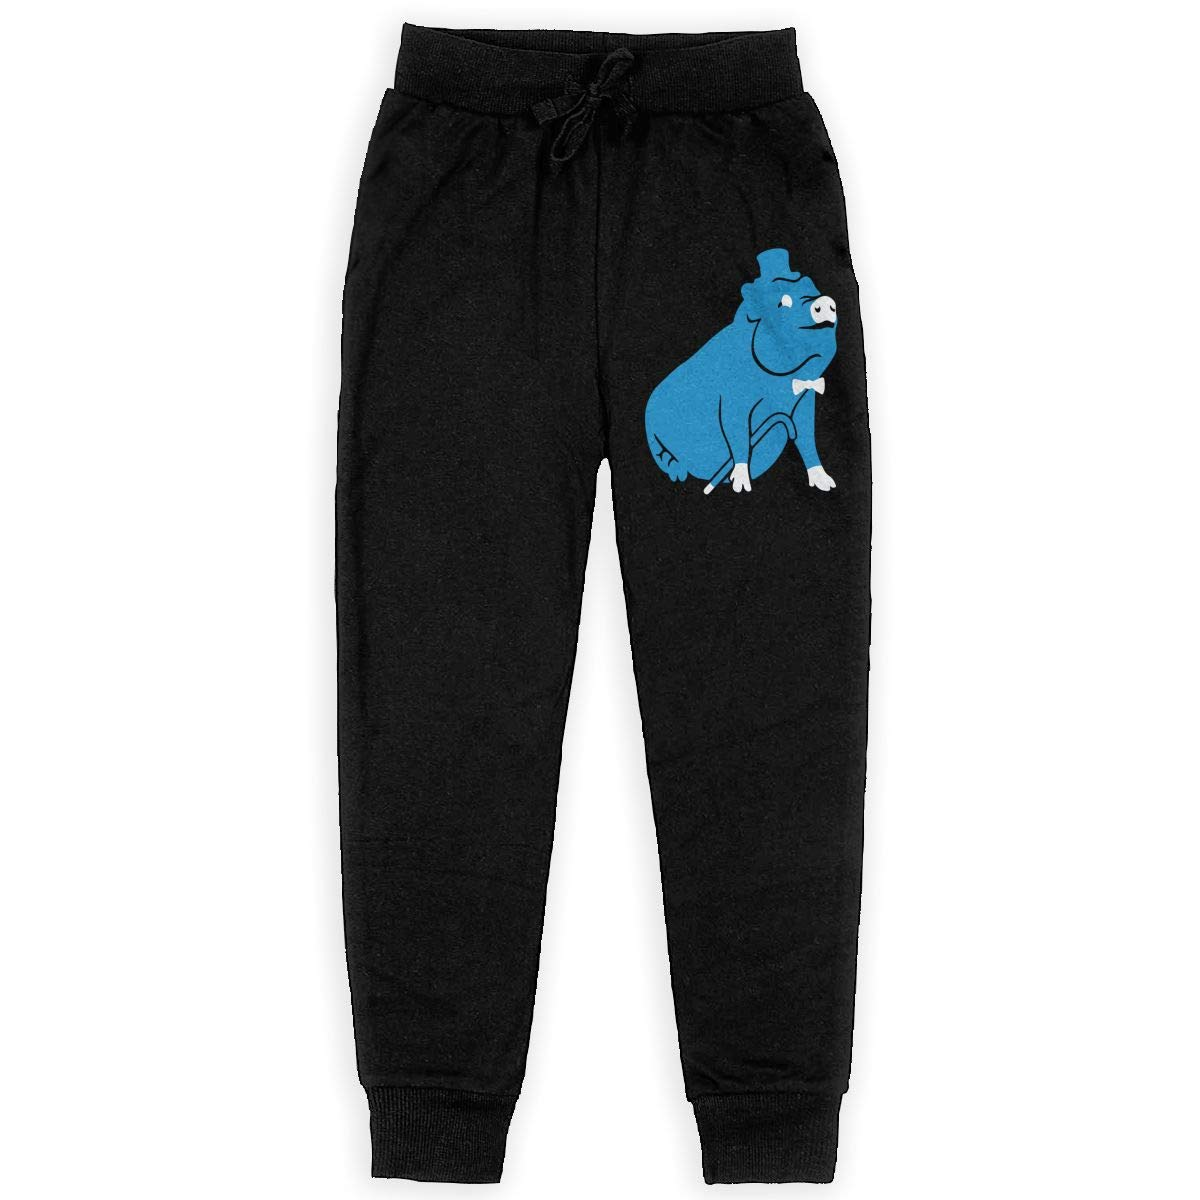 Girls Warm Fleece Active Pants for Teen Boy Fancy Pig Soft//Cozy Sweatpants